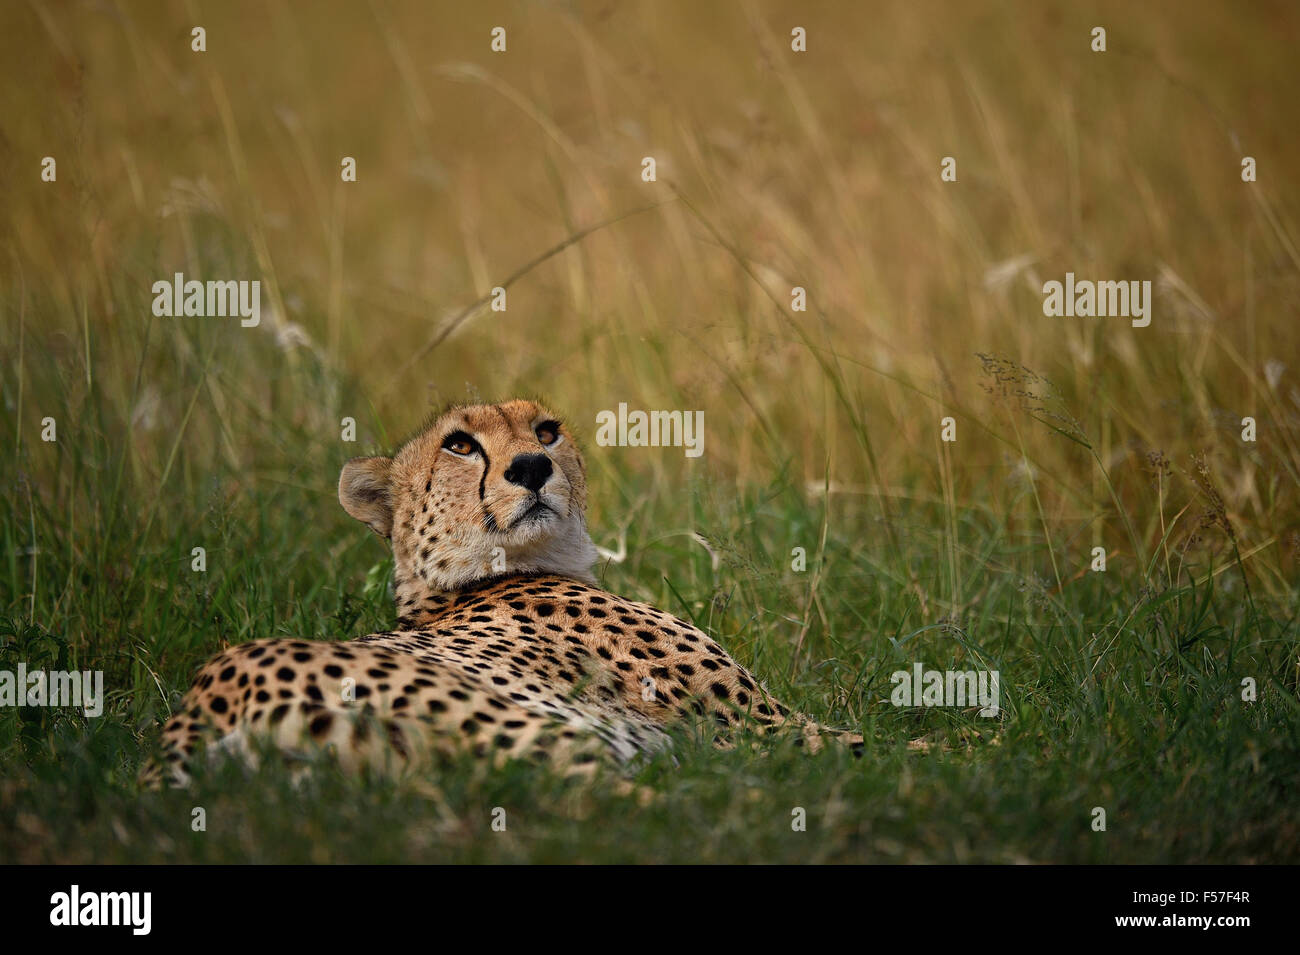 CHEETAH ON A BREEZY DAY ! - Stock Image